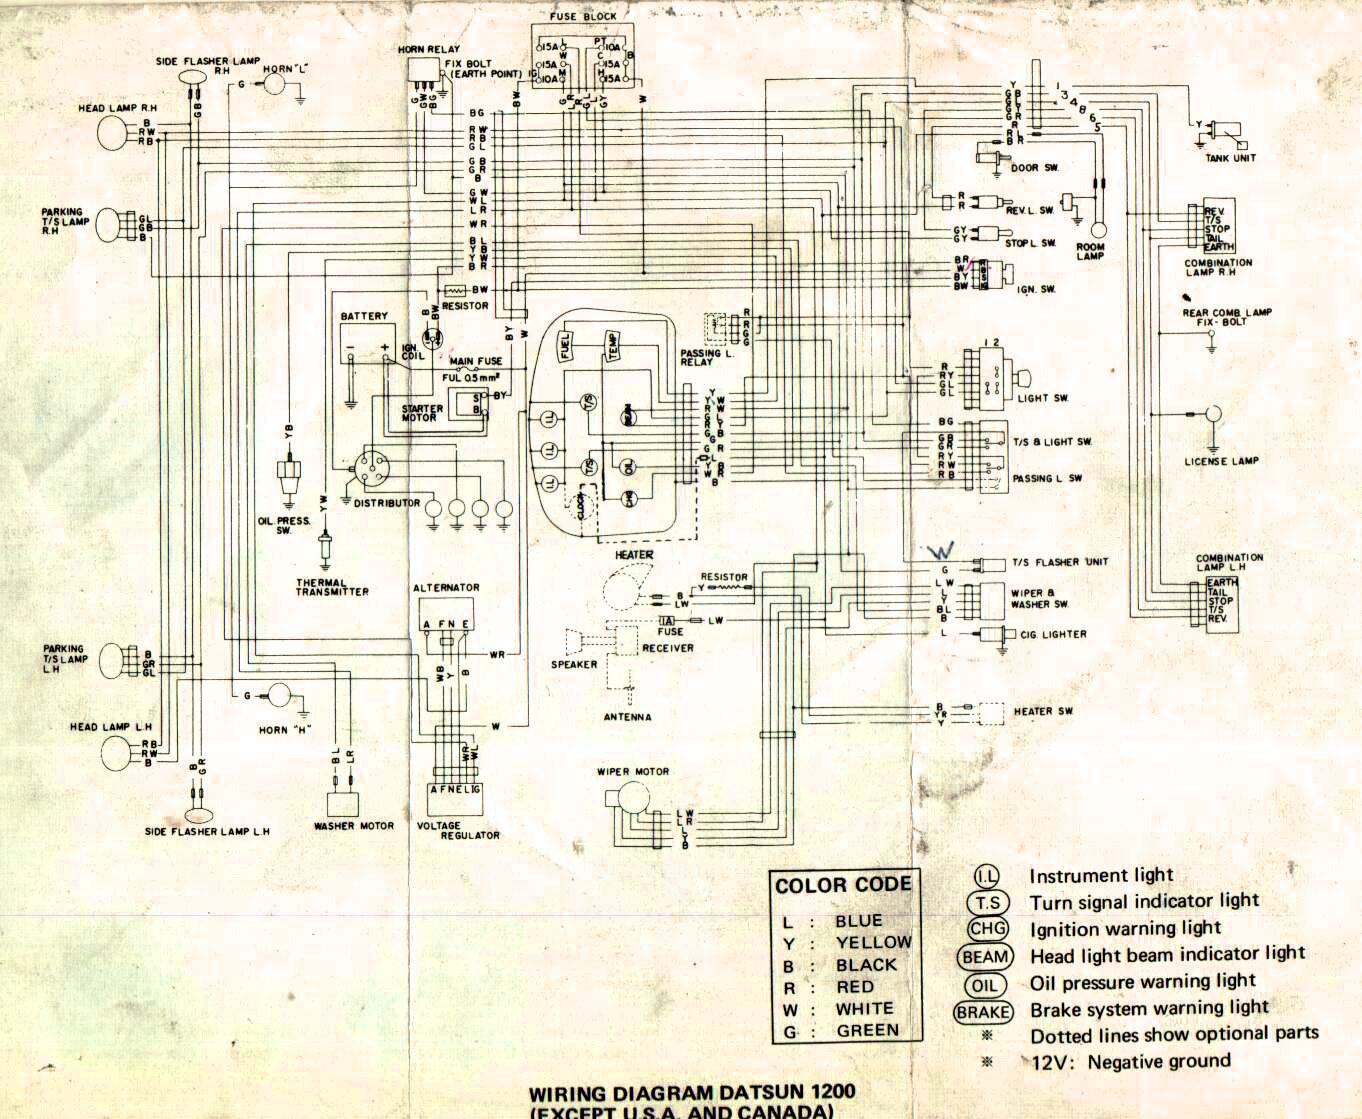 Tech Wiki Wiring Diagram Datsun 1200 Club House Electrical Diagrams Further Australia Light Switch Dat110 2